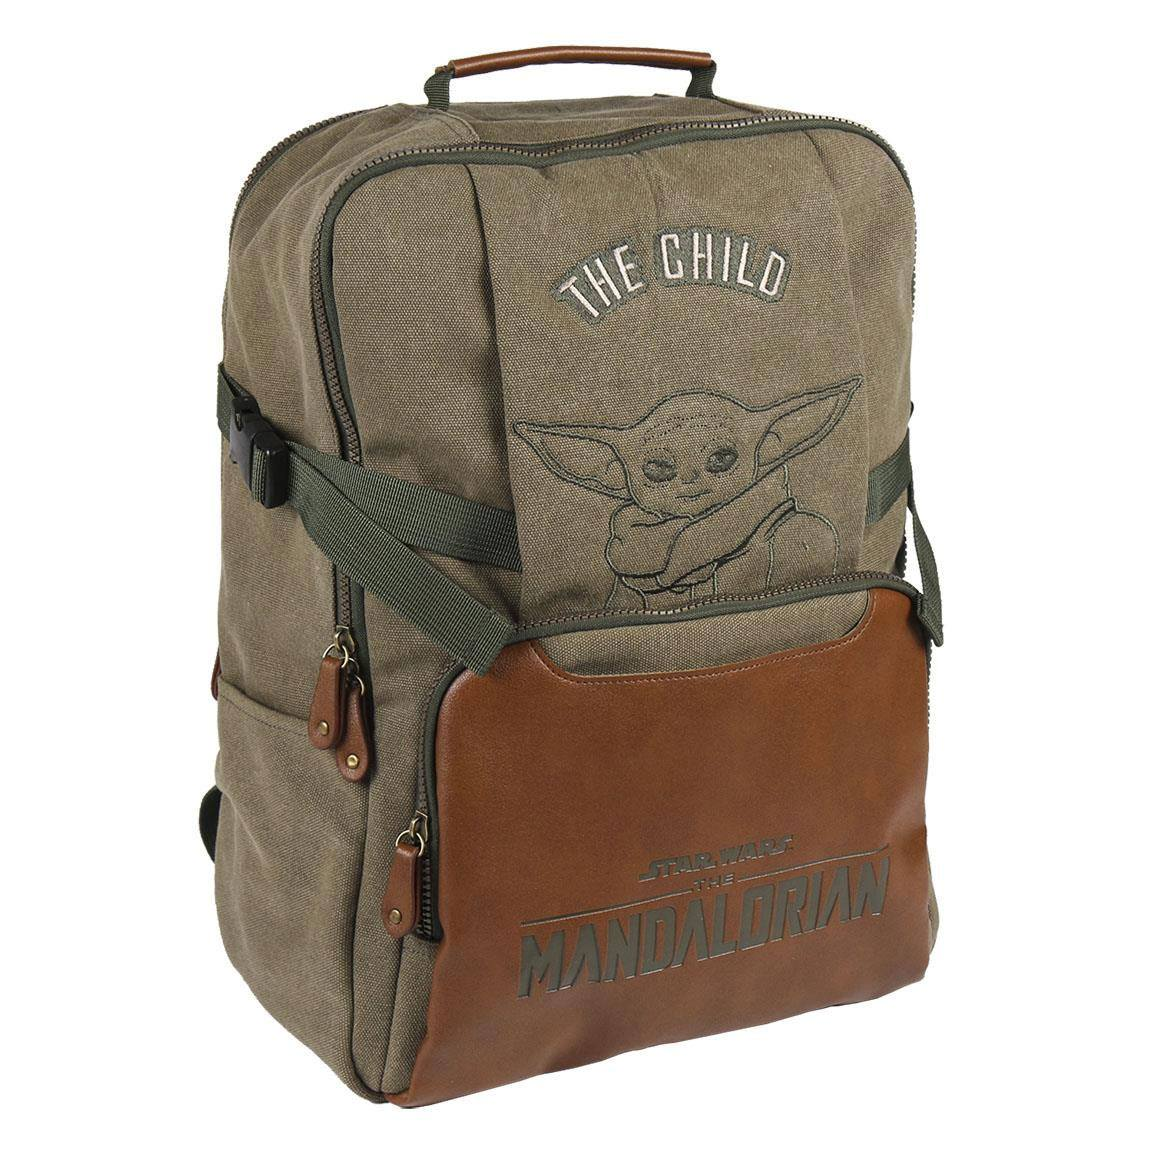 Star Wars The Mandalorian Backpack The Child